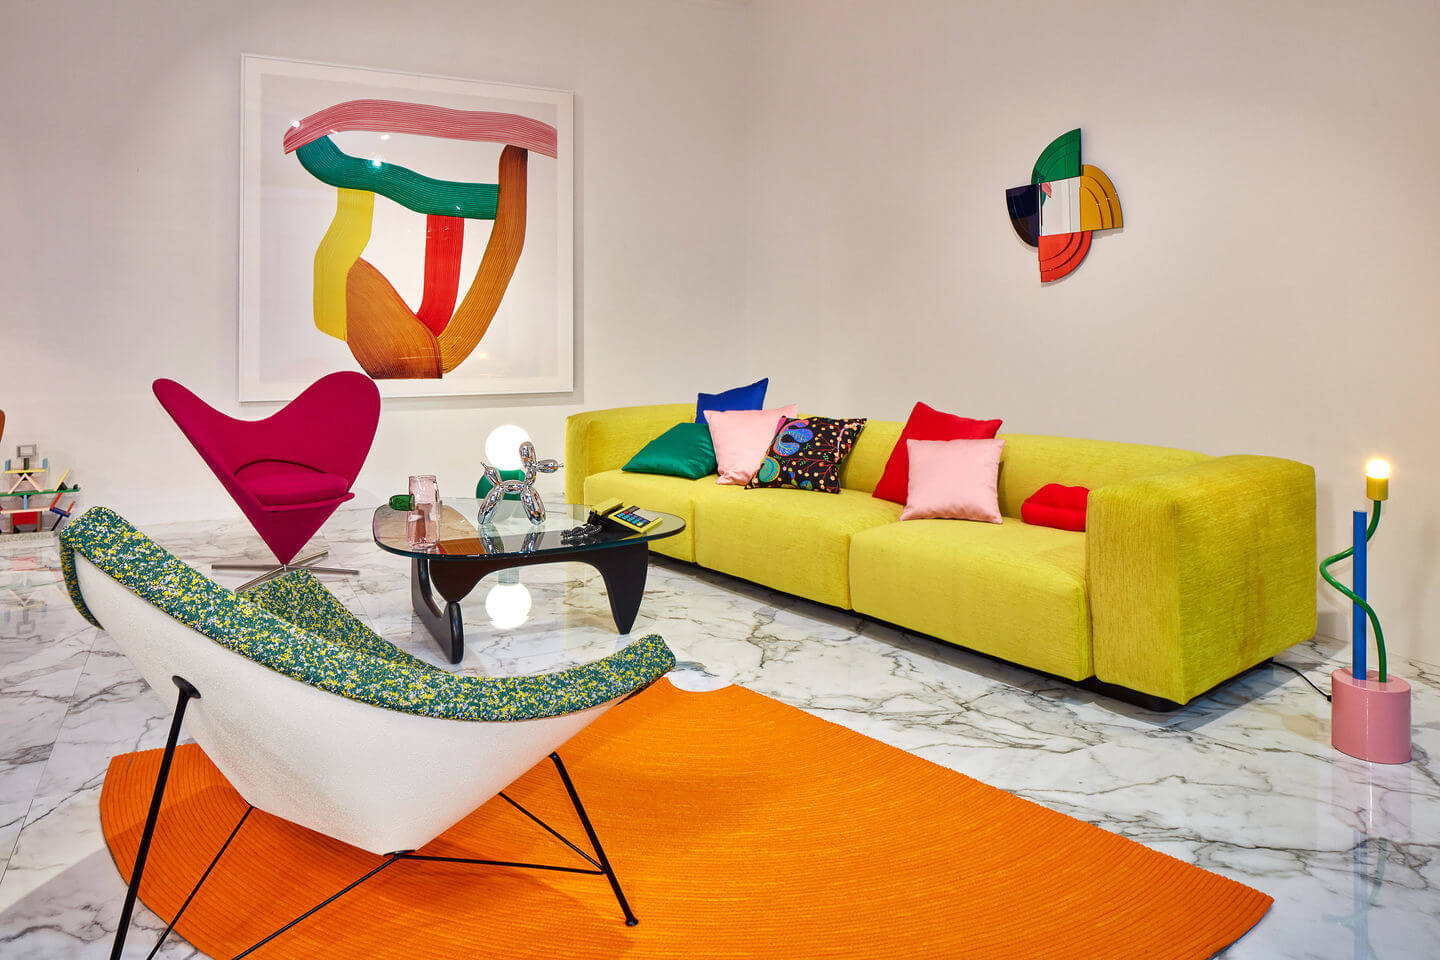 Italian Trends You Don't Want To Miss Out italian trends Italian Trends You Don't Want To Miss Out! INTERIOR COLOR TRENDS 2020 Milan Design Week 2019 2719345 vitra 2019 SaloneMobile 009 v fullbleed 1440x